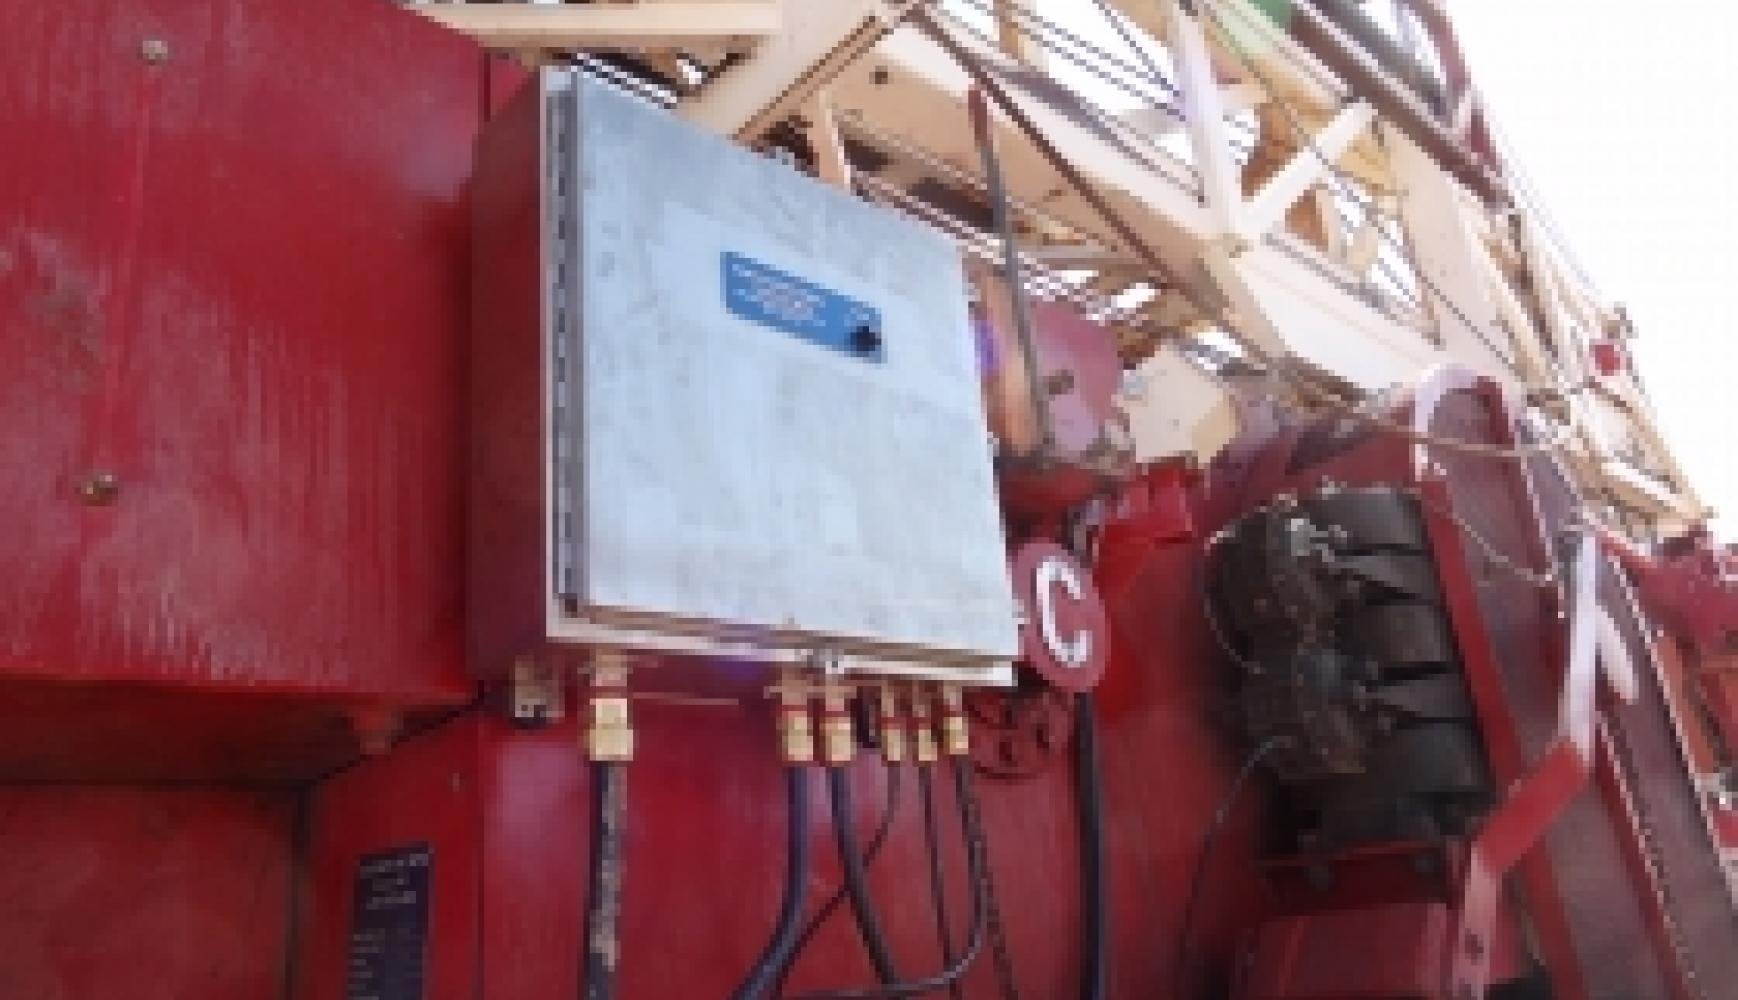 Rig Monitoring System - RMS, tension monitoring, rope tension